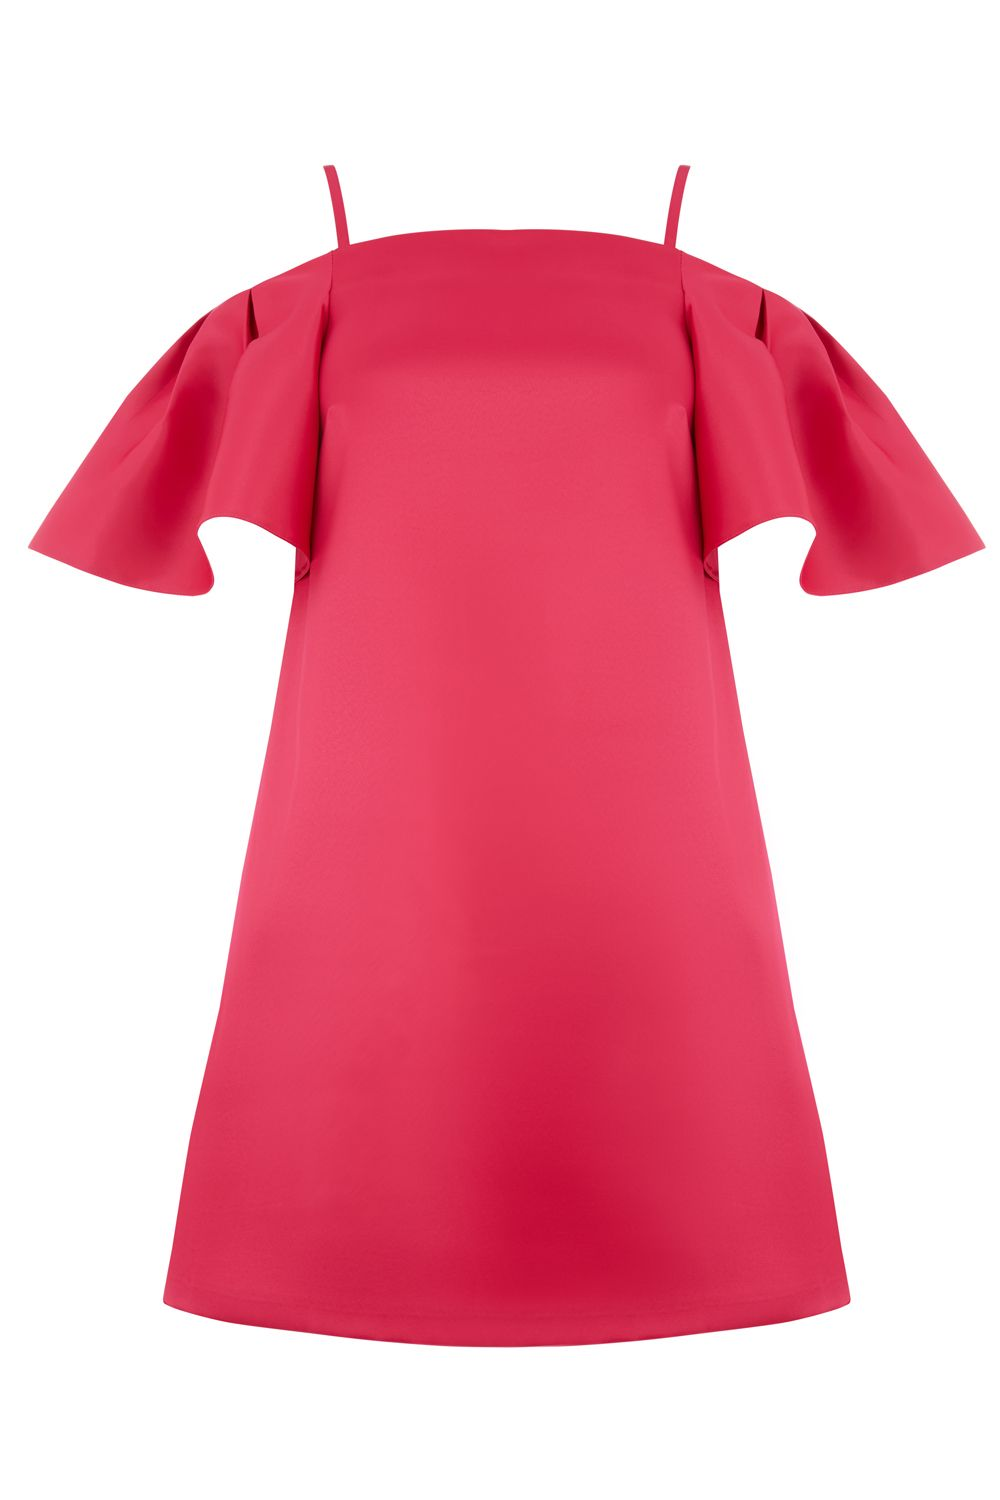 Warehouse Satin Off Shoulder Dress, Pink